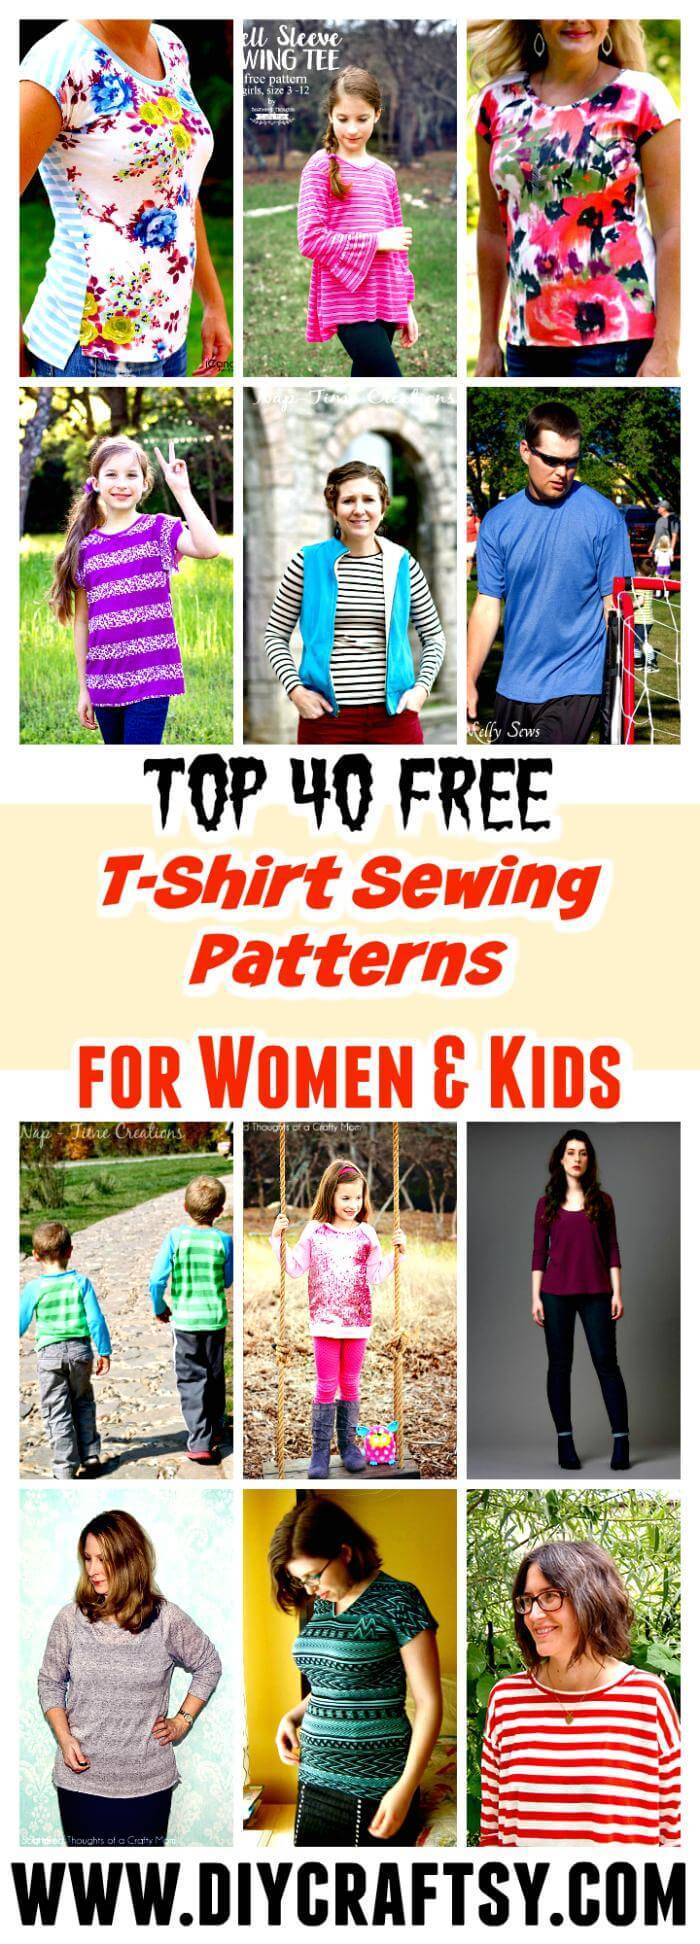 Top 40 free t shirt sewing patterns for women kids diy crafts t shirt sewing patterns jeuxipadfo Images